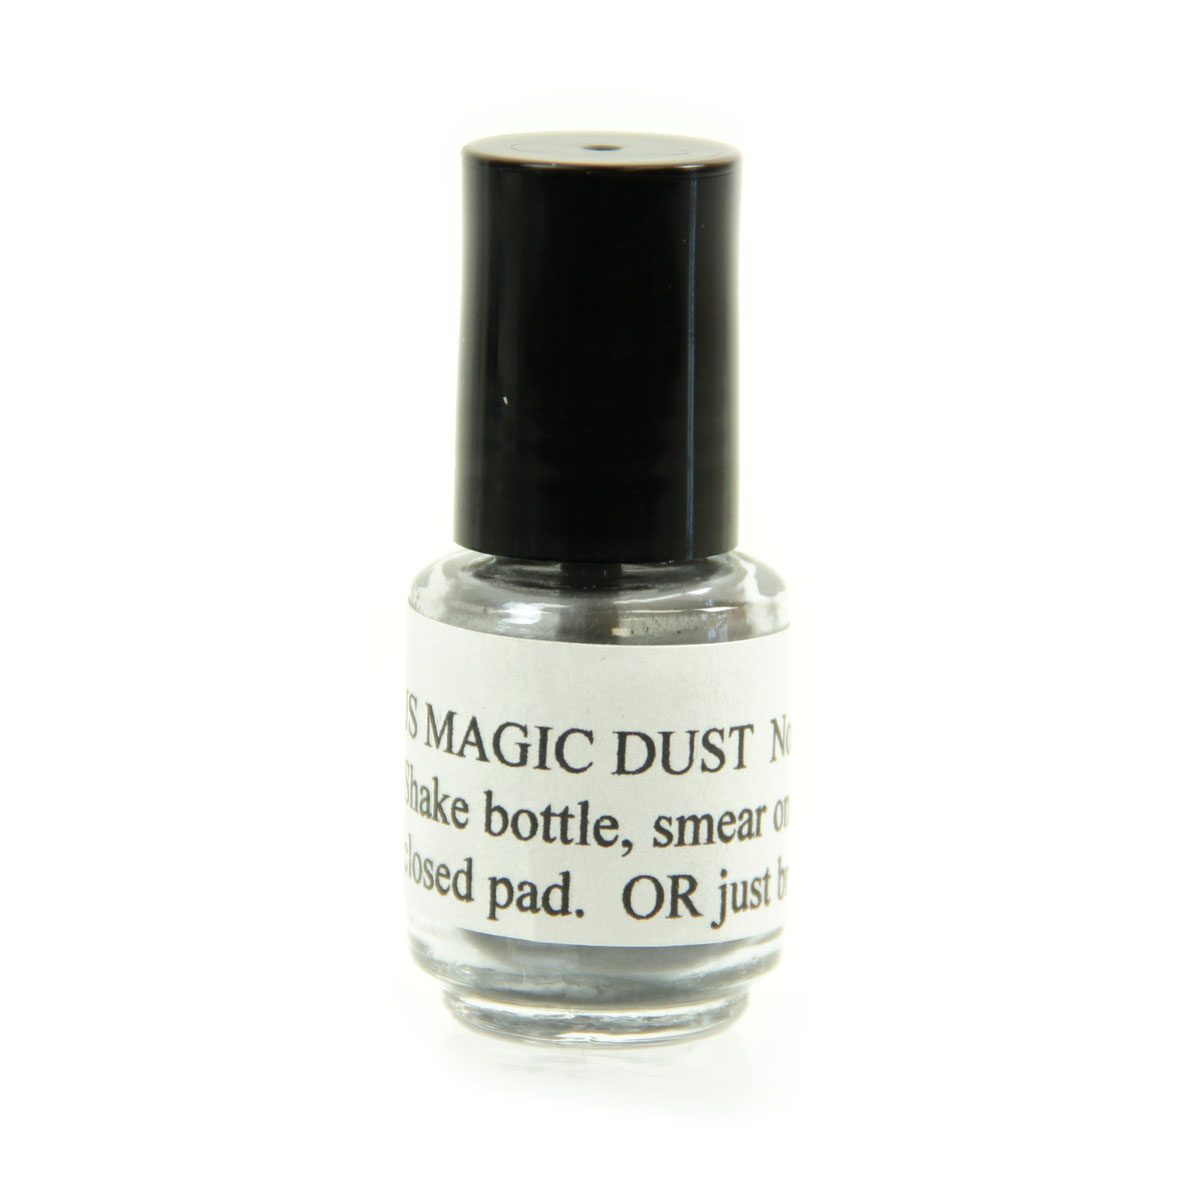 schmidt magic dust for sticking pads 1